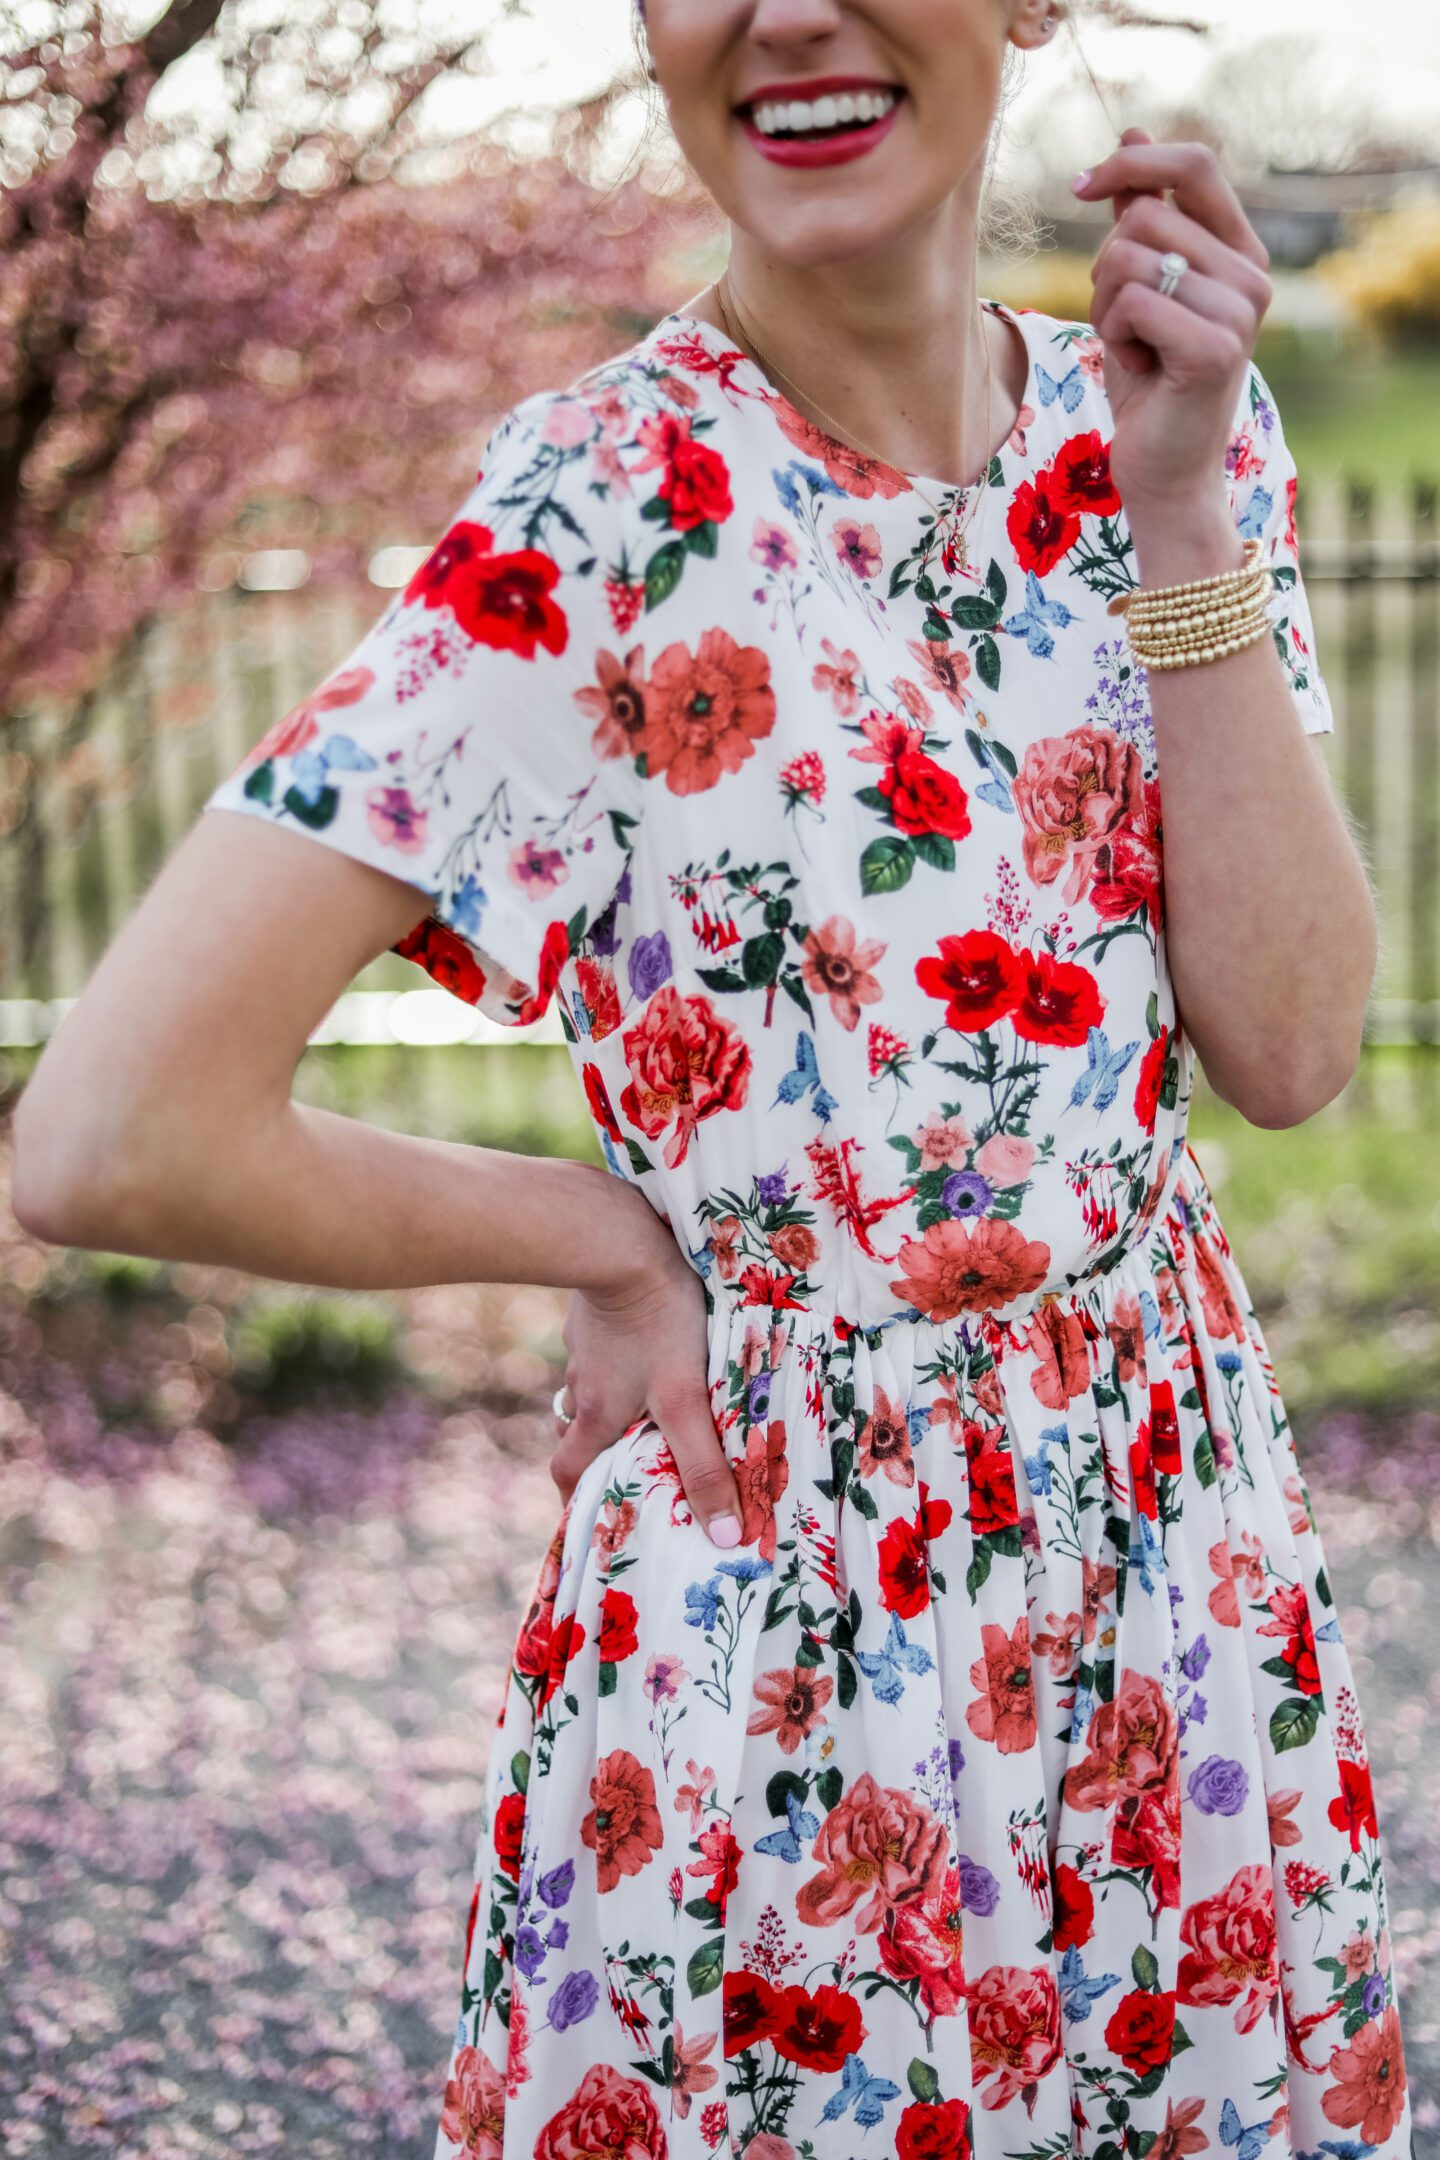 $28 FLORAL DRESS FOR SPRING - affordable floral dress from Amazon that is SO BEAUTIFUL! - on Coming Up Roses